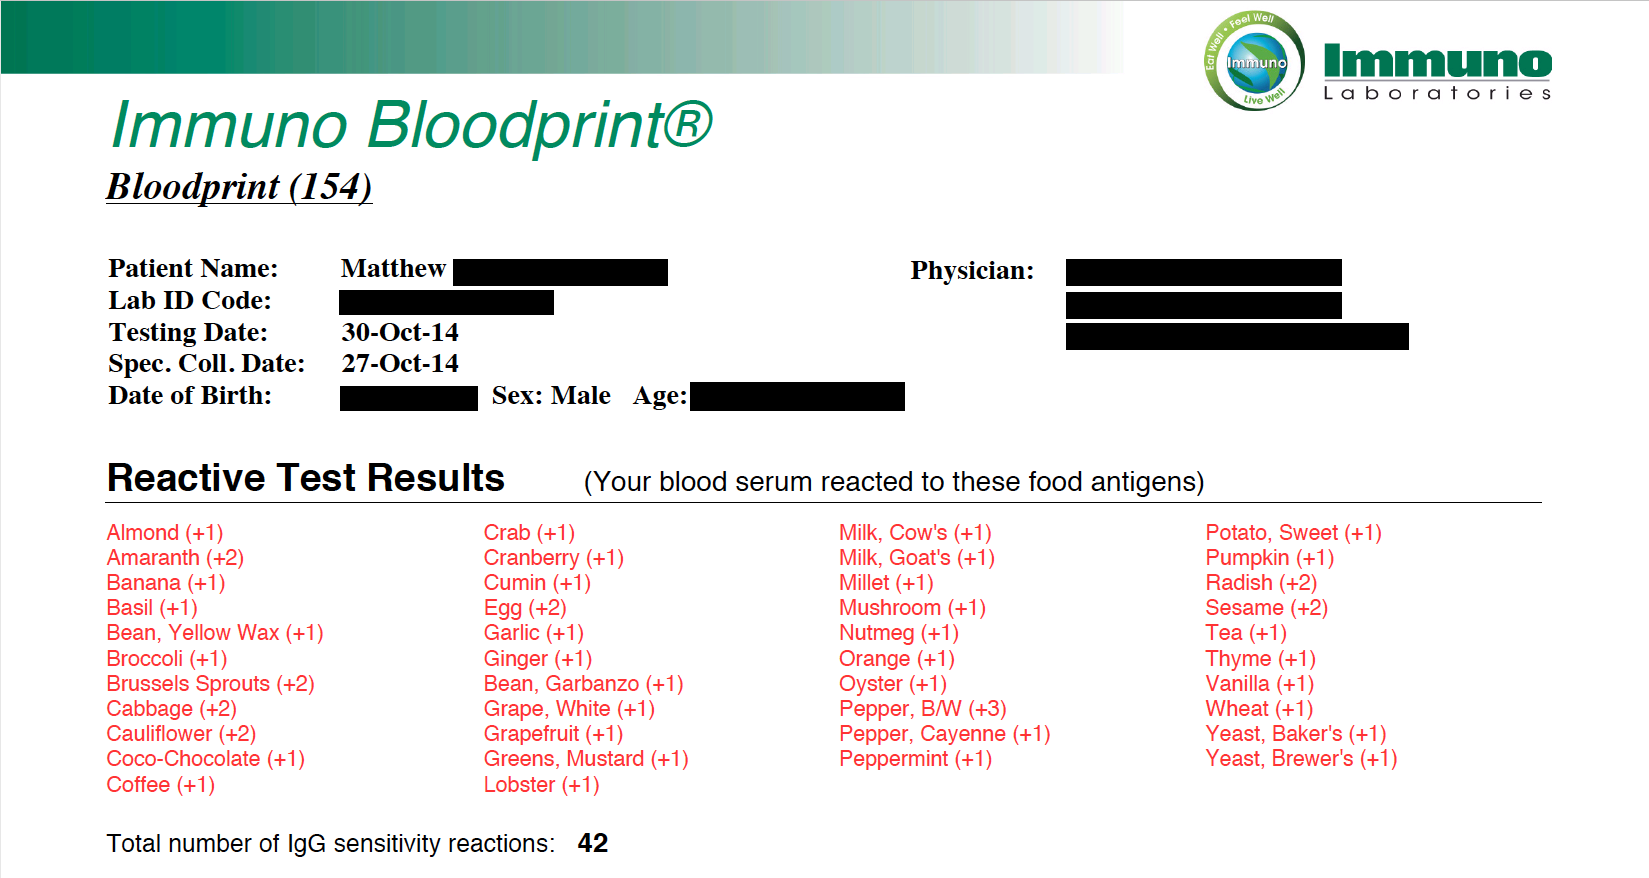 Immuno Bloodprint 154 test from Pharmasan Labs for Flaming Gut probiotics and prebiotics